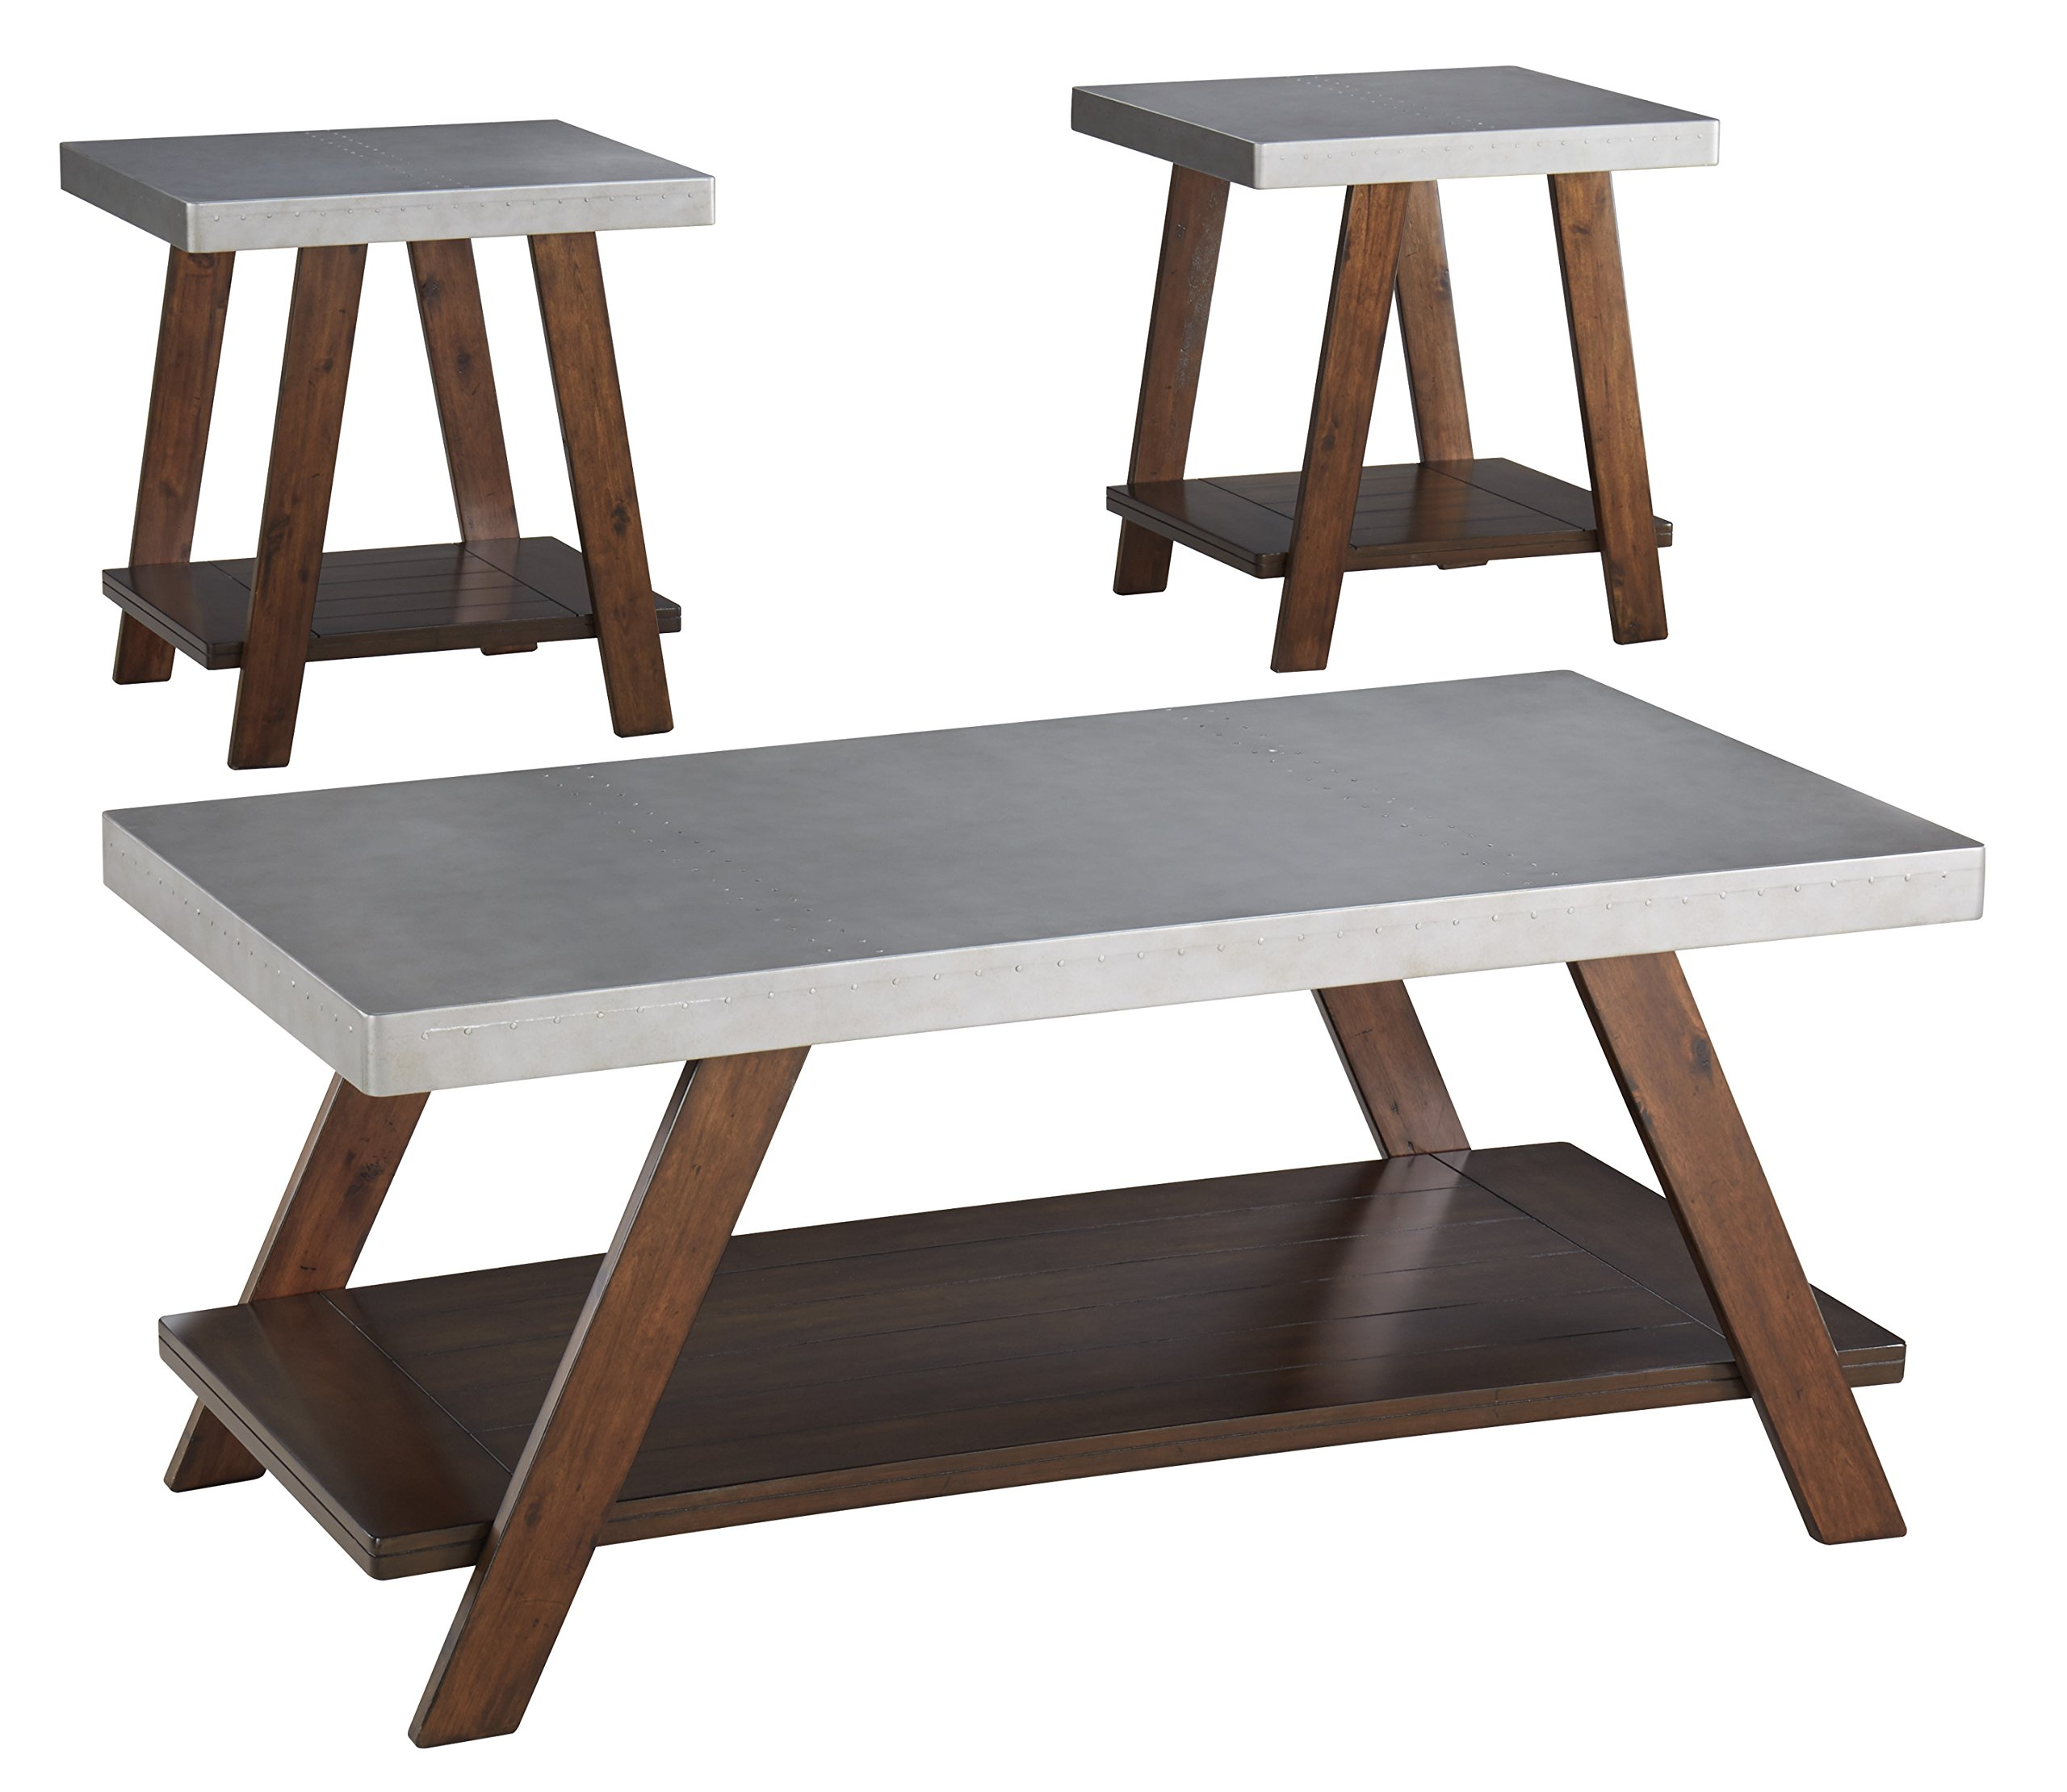 Ashley Furniture Signature Design - Bellenteen Casual 3-Piece Table Set - Includes Cocktail Table & Two End Tables - Brown/Silver by Signature Design by Ashley